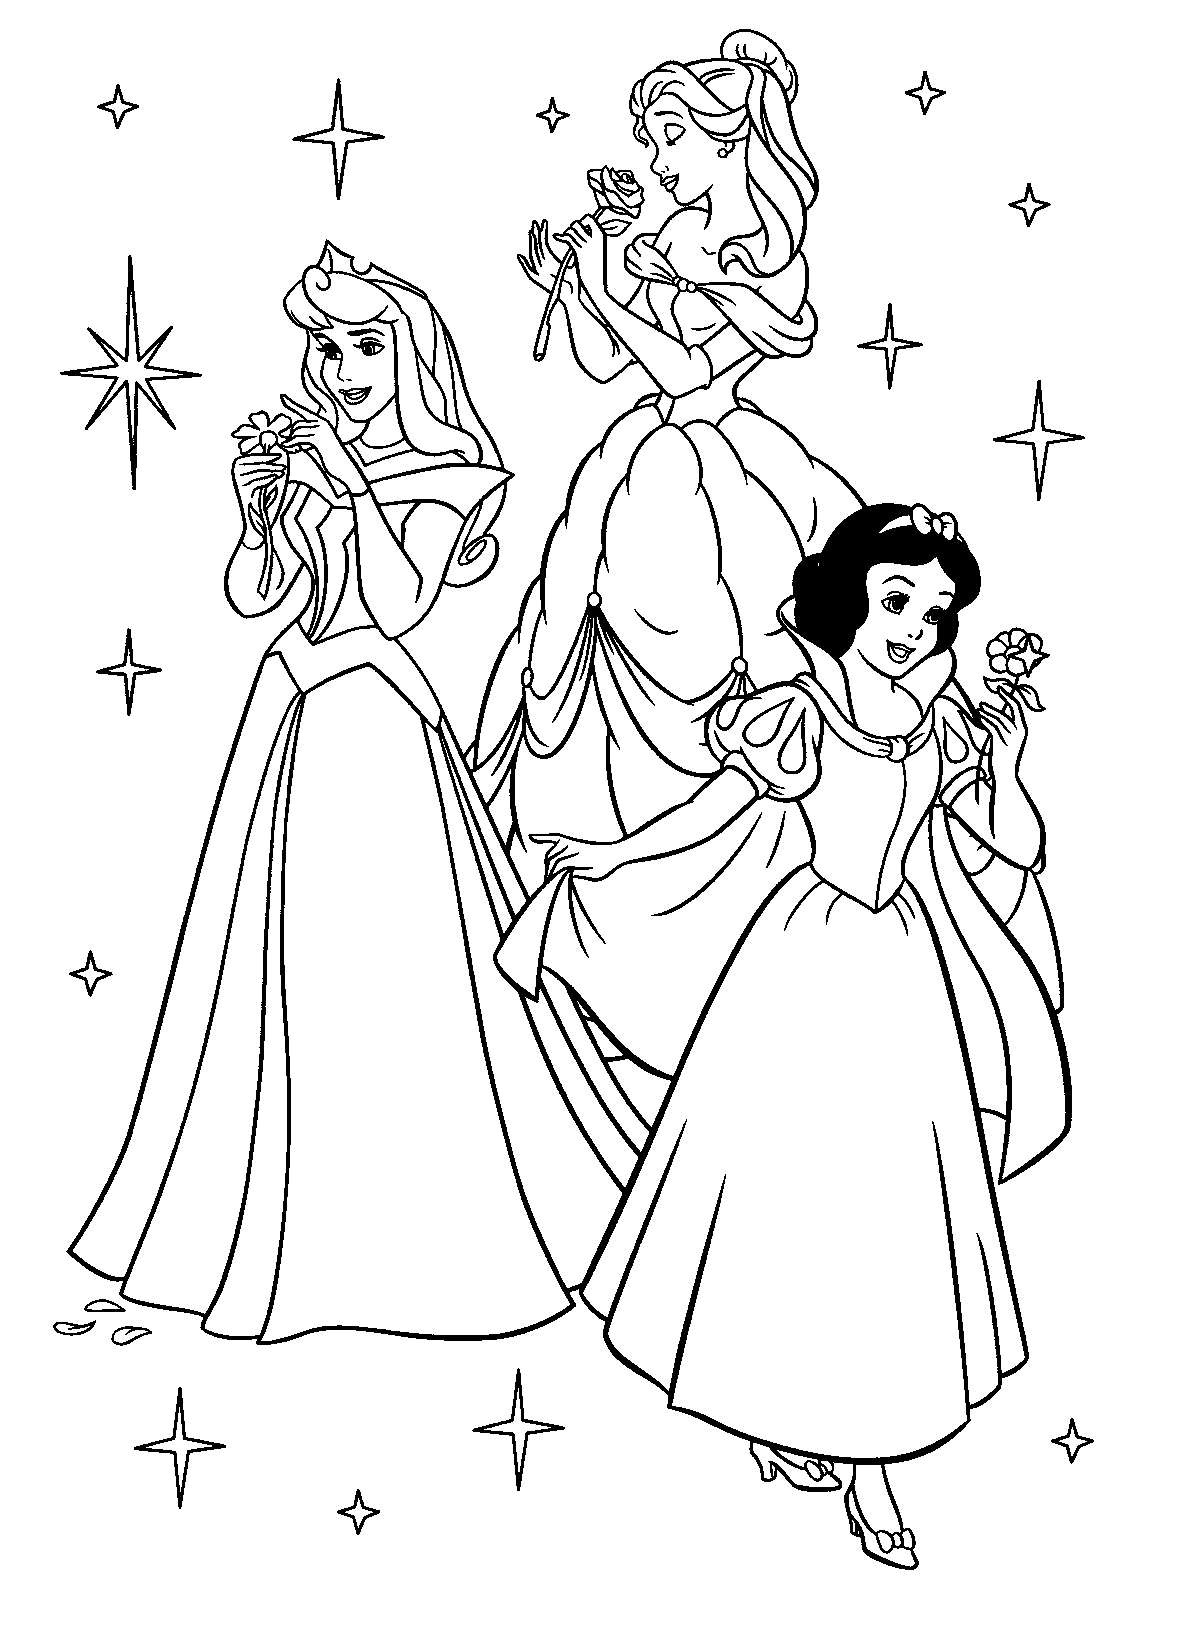 Coloring Book Pages Princess : Free printable disney princess coloring pages for kids